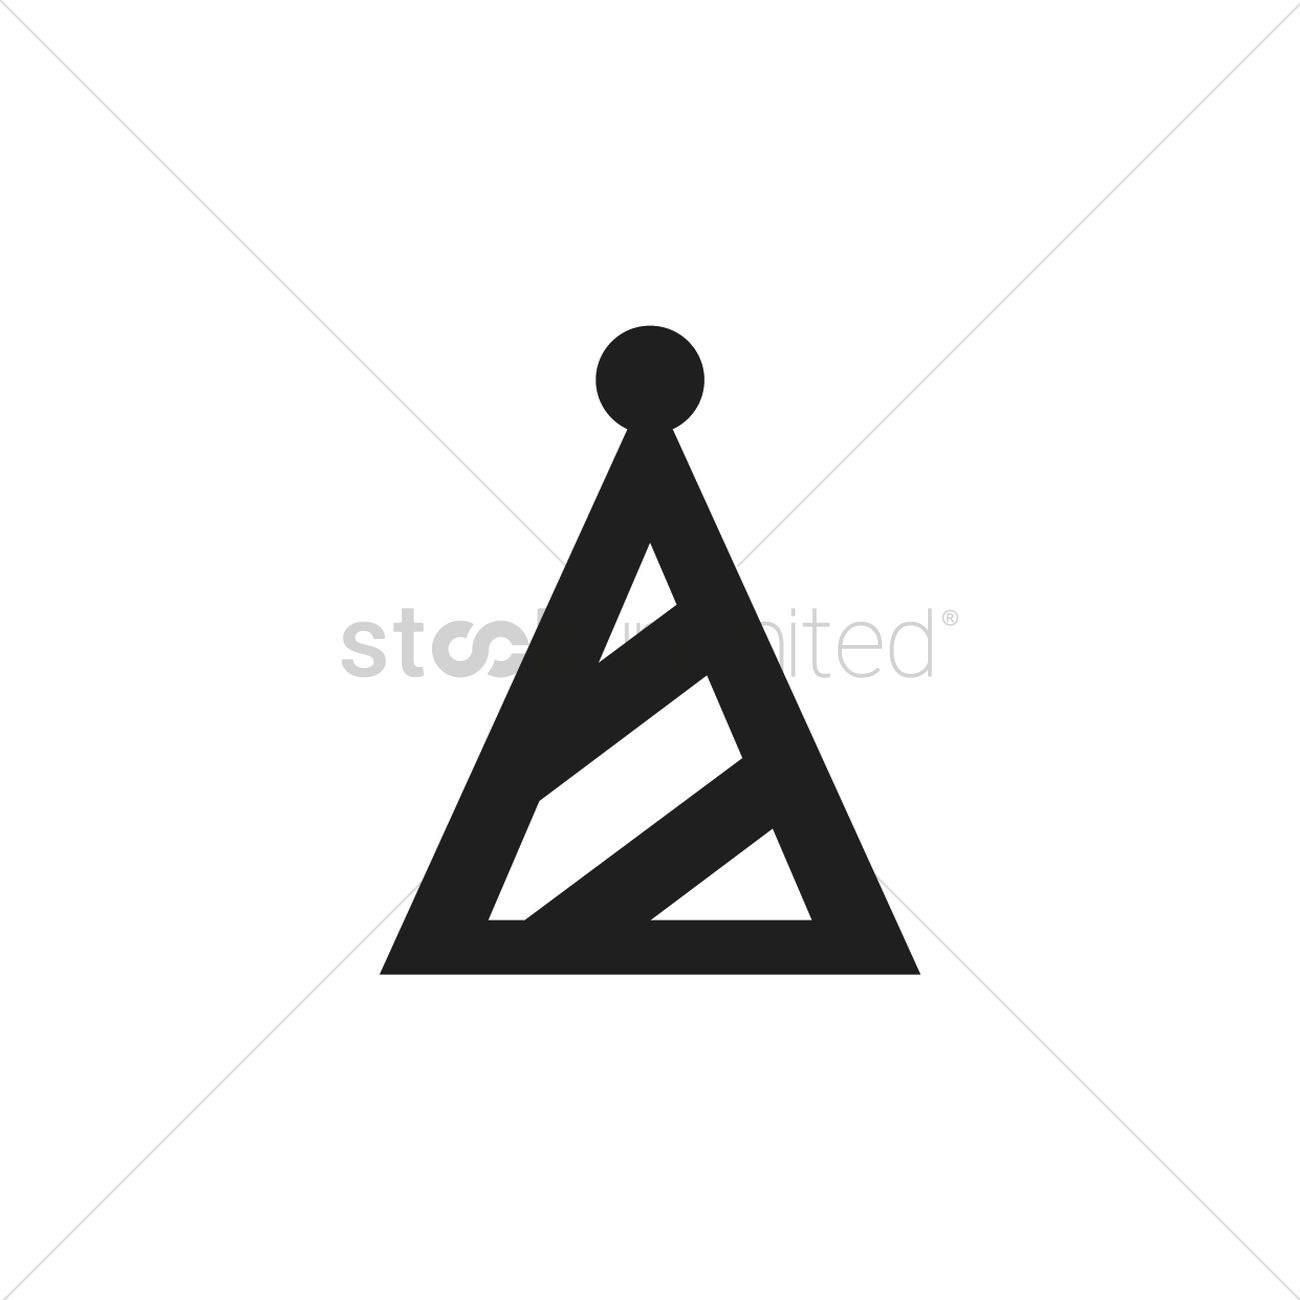 Party Hat Icon Vector Image 2024471 Stockunlimited